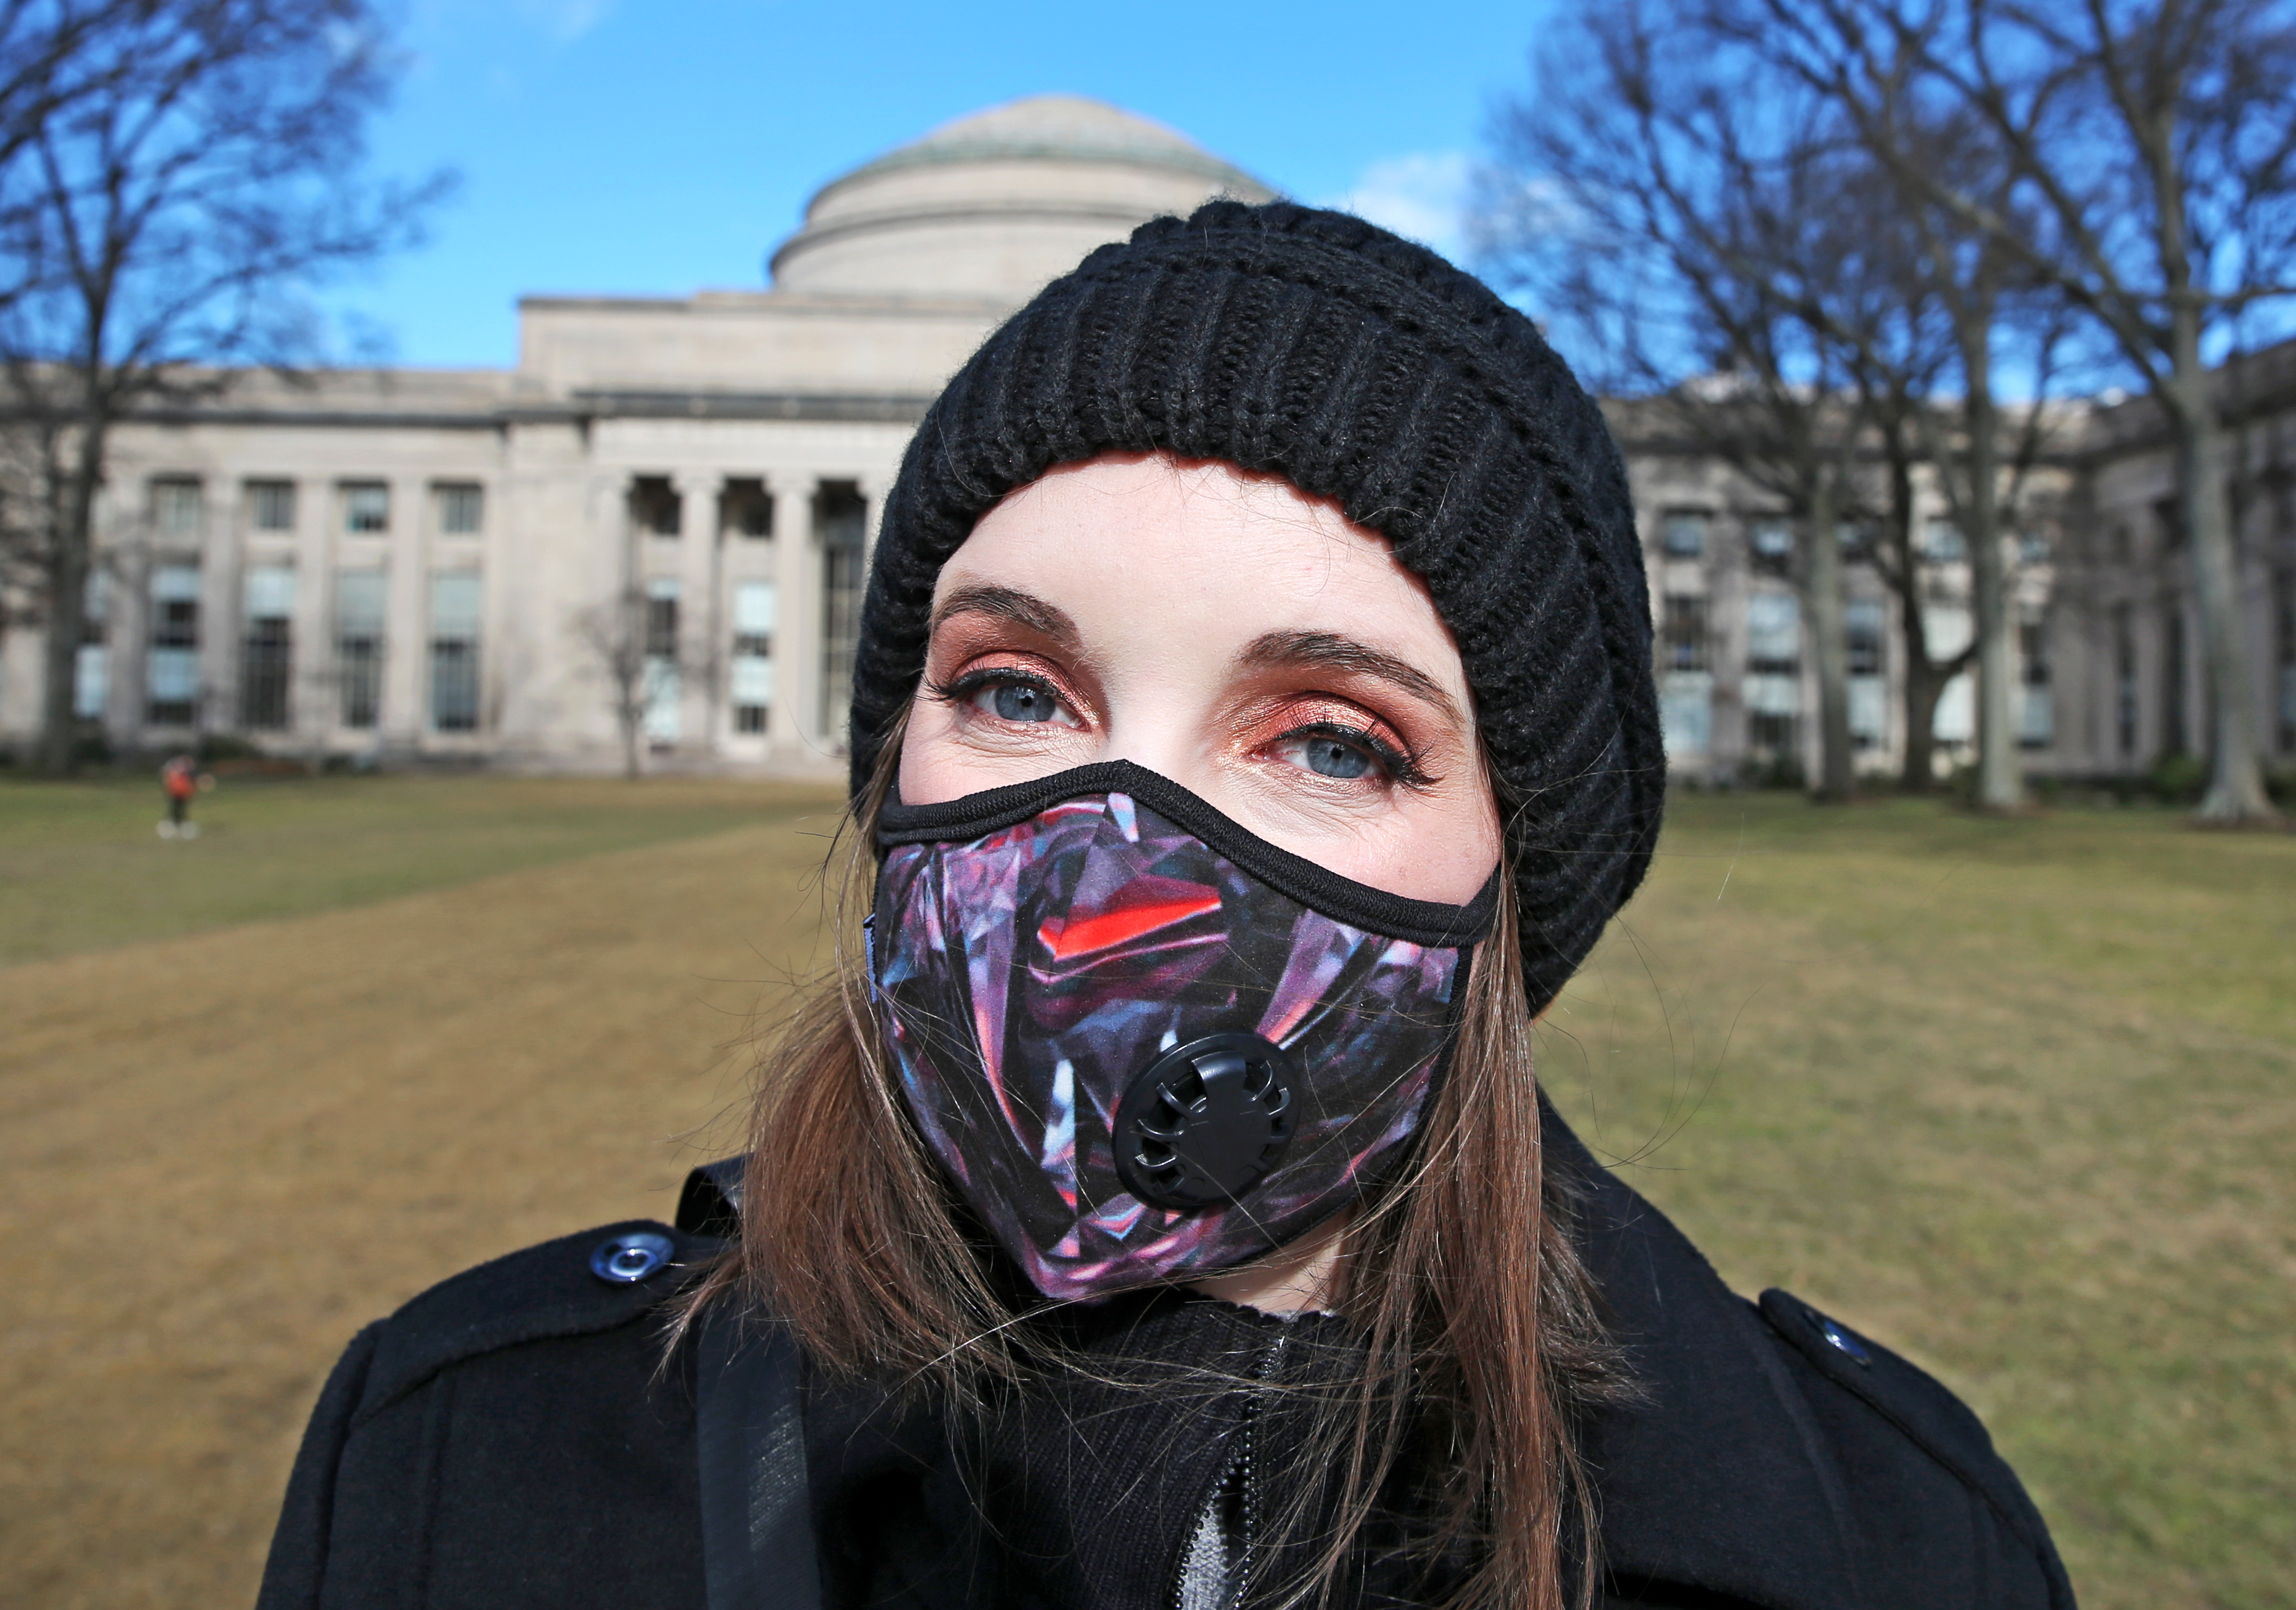 Amid coronavirus fears, our relationship with masks remains ...